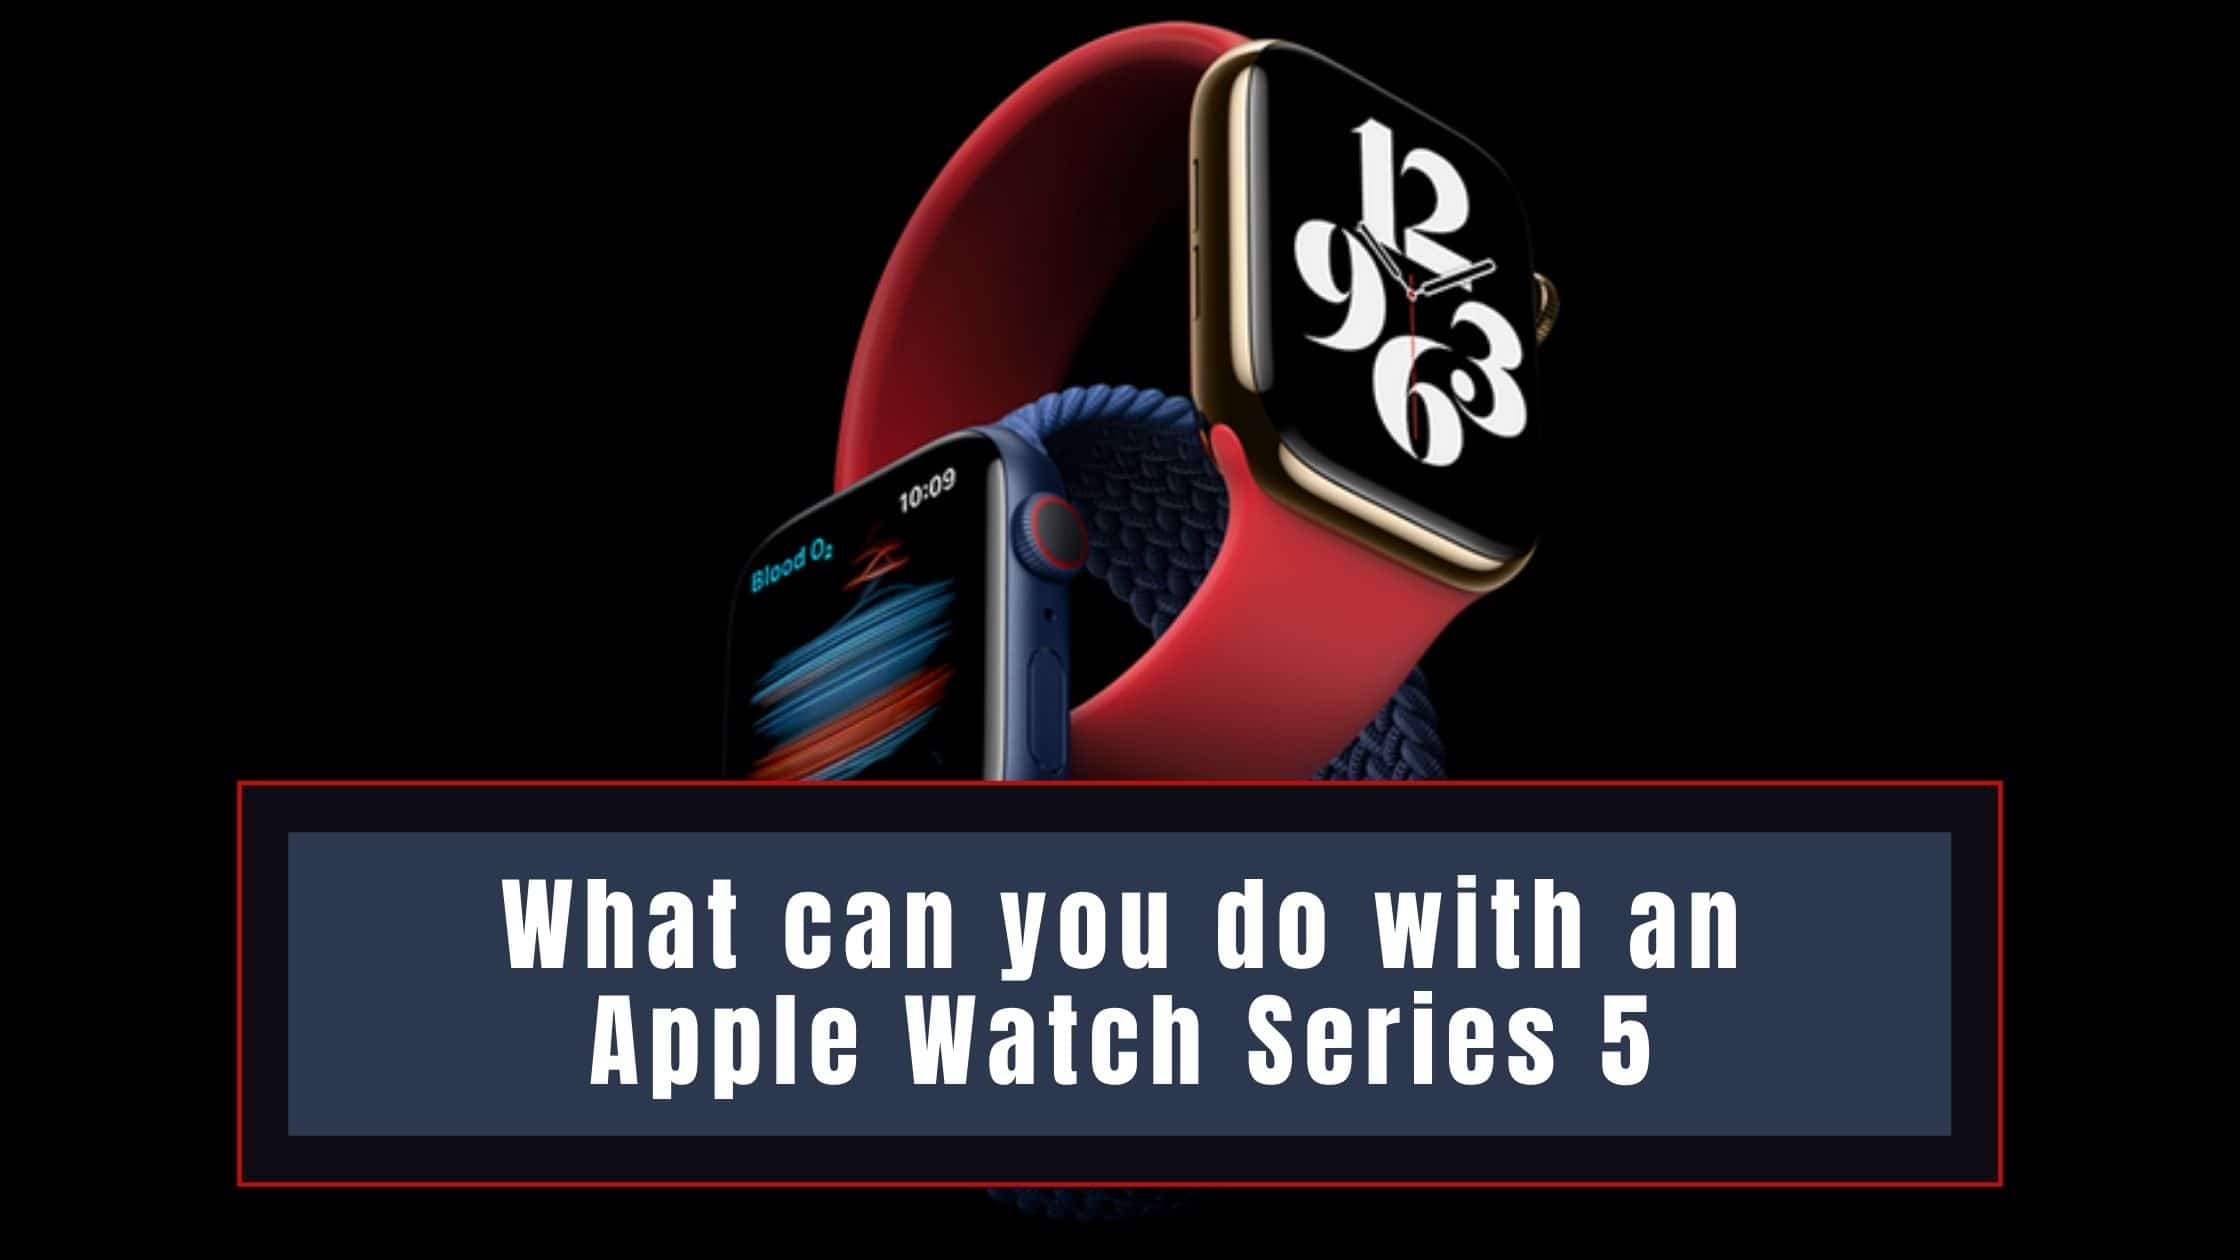 What can you do with an Apple Watch Series 5